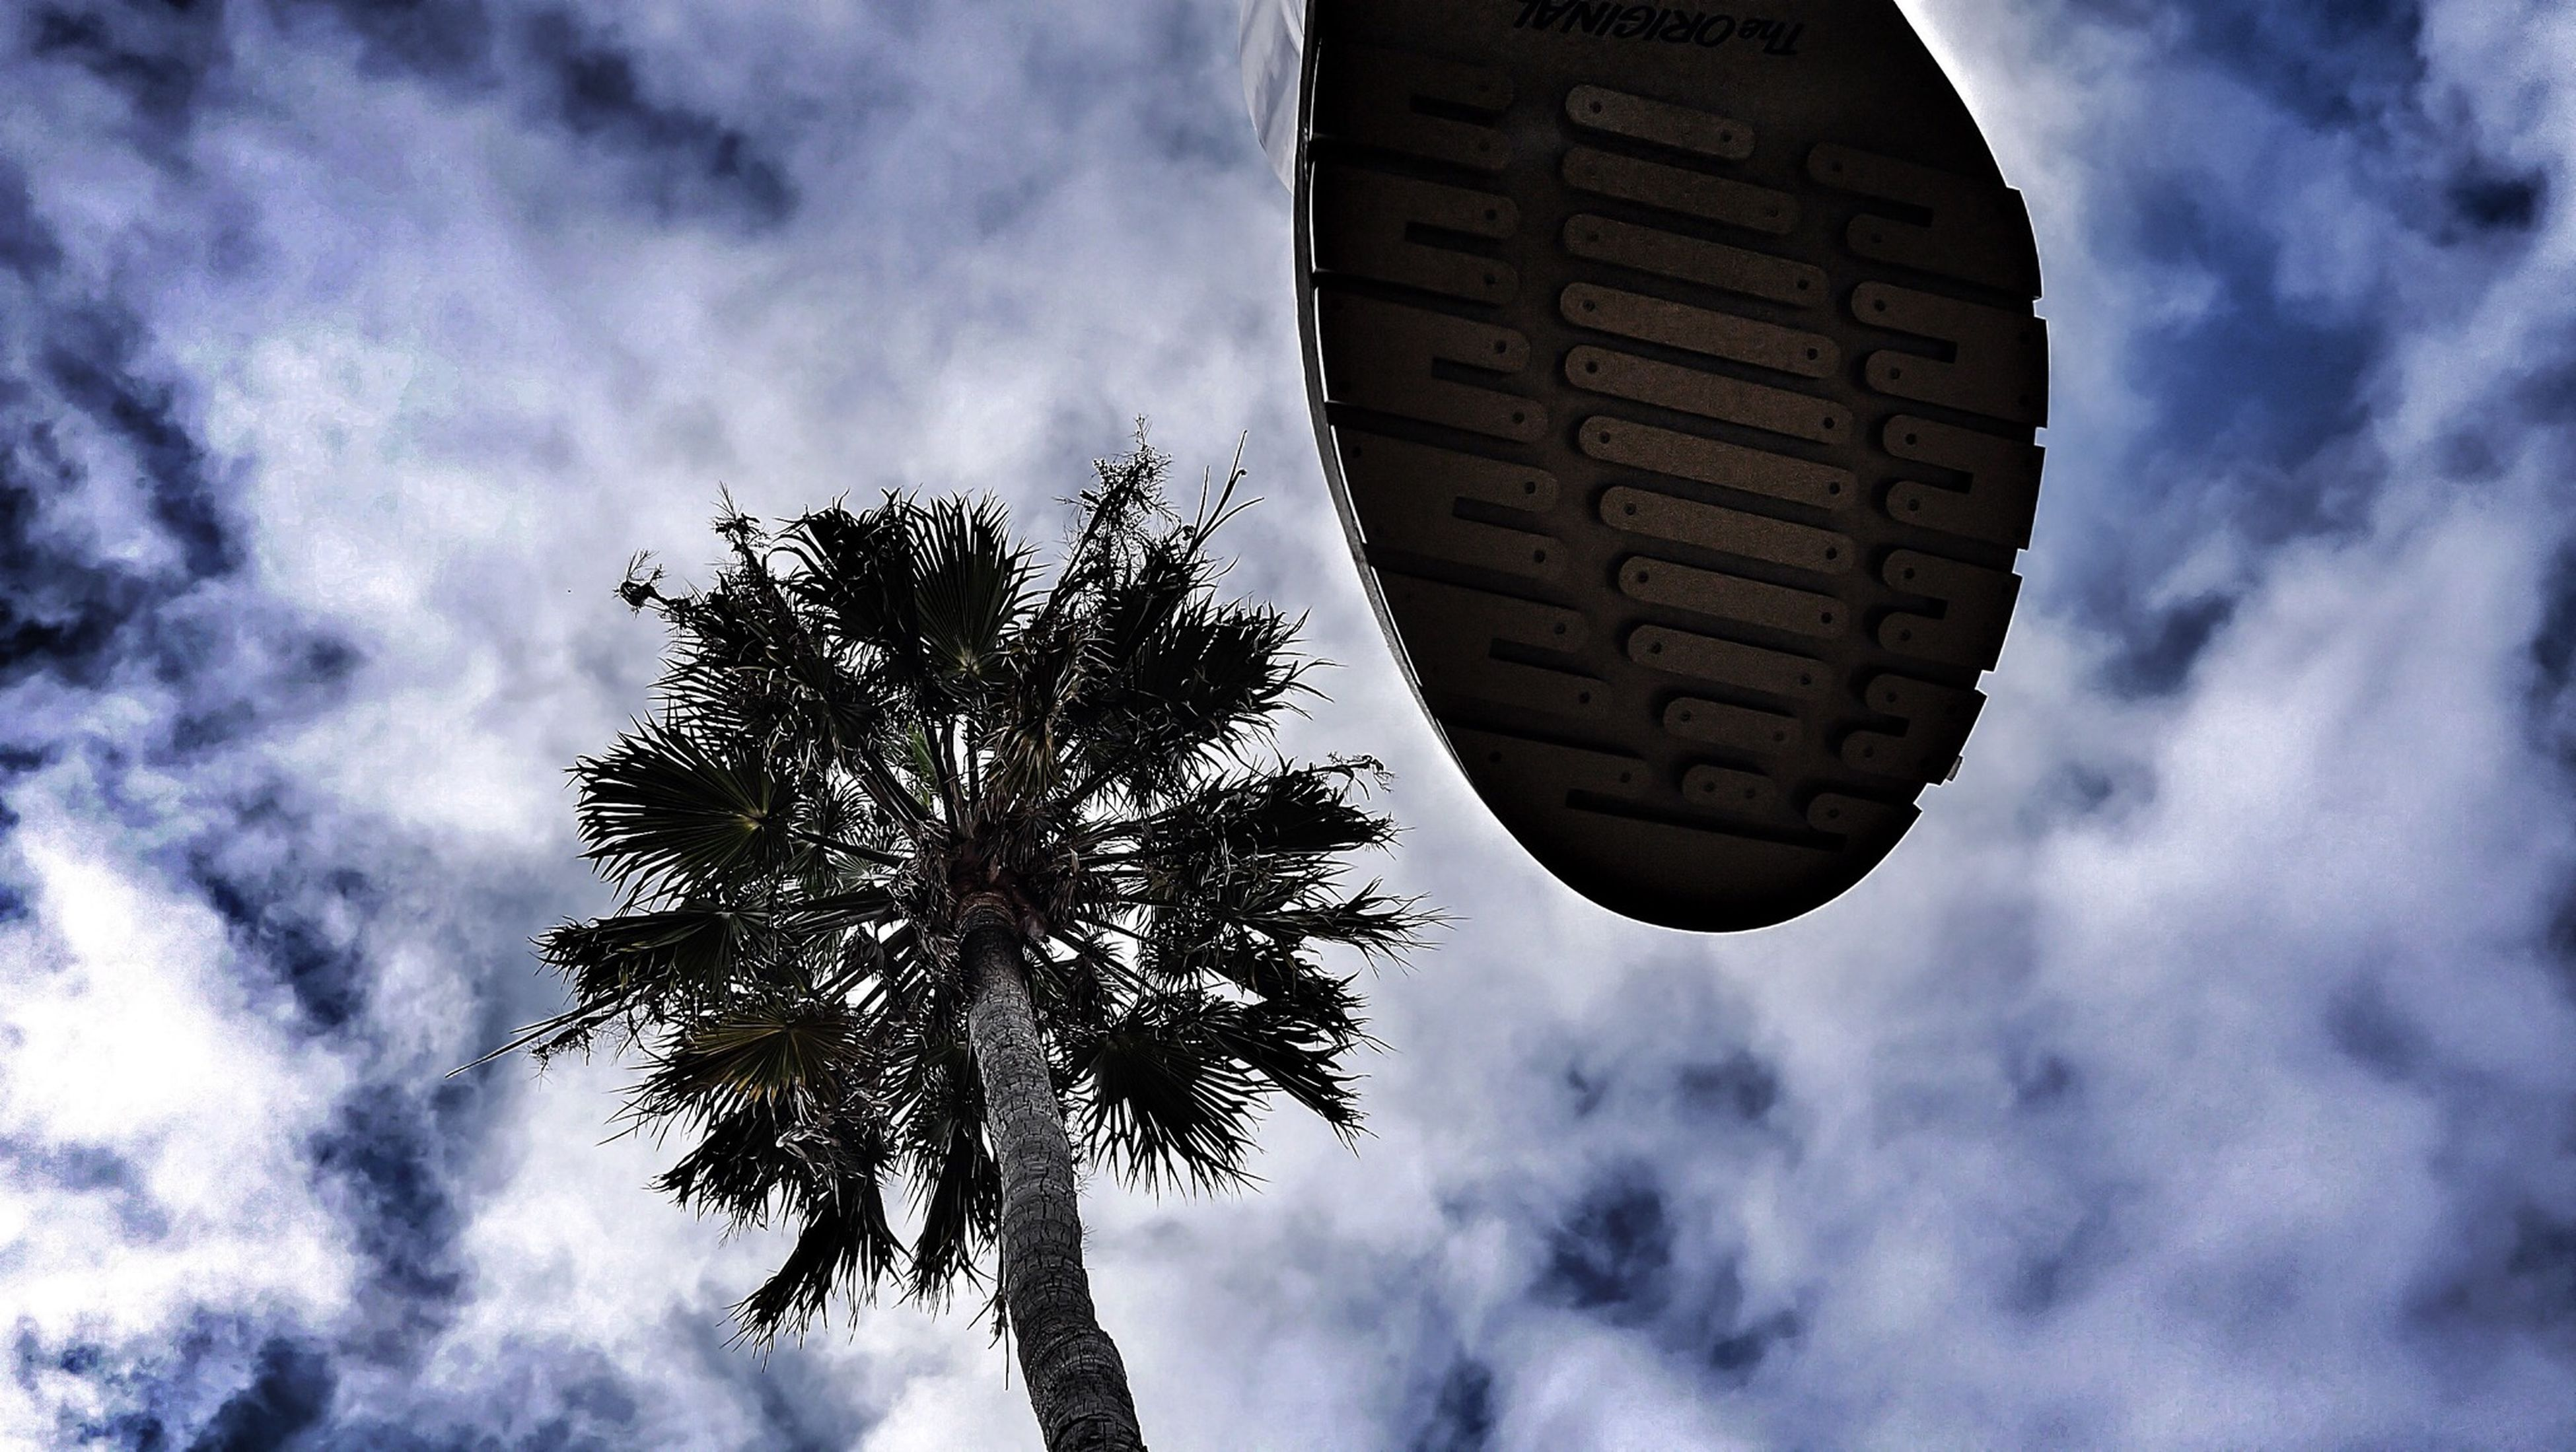 sky, cloud - sky, low angle view, cloudy, tree, cloud, tranquility, nature, growth, palm tree, beauty in nature, tranquil scene, outdoors, scenics, overcast, silhouette, no people, day, weather, leaf